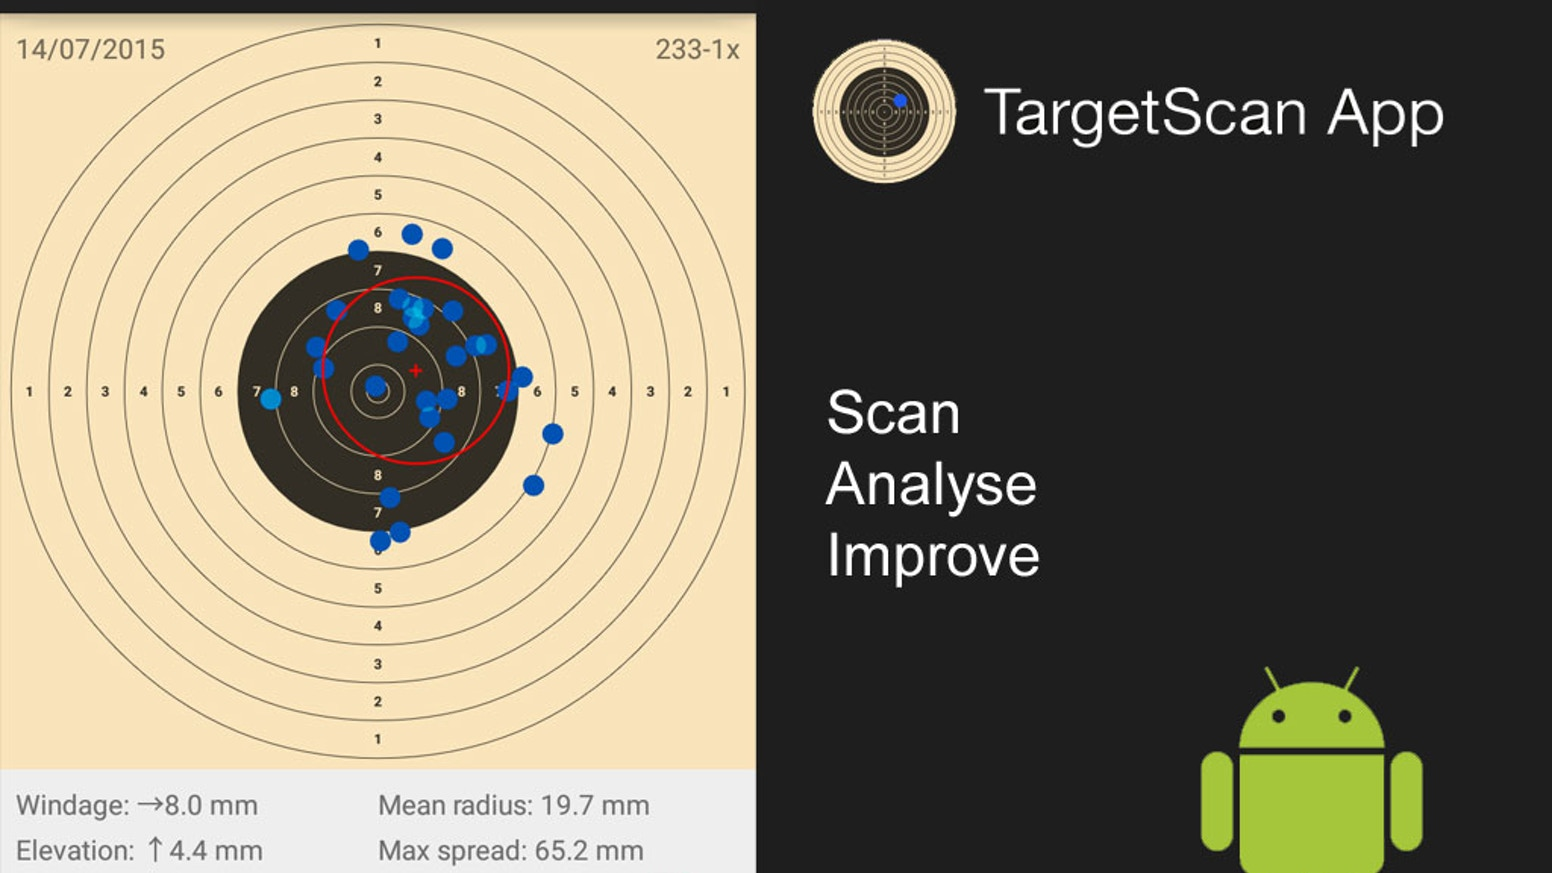 Score your targets and analyse the shooting group just by taking a photo of the target (porting TargetScan App to Android).